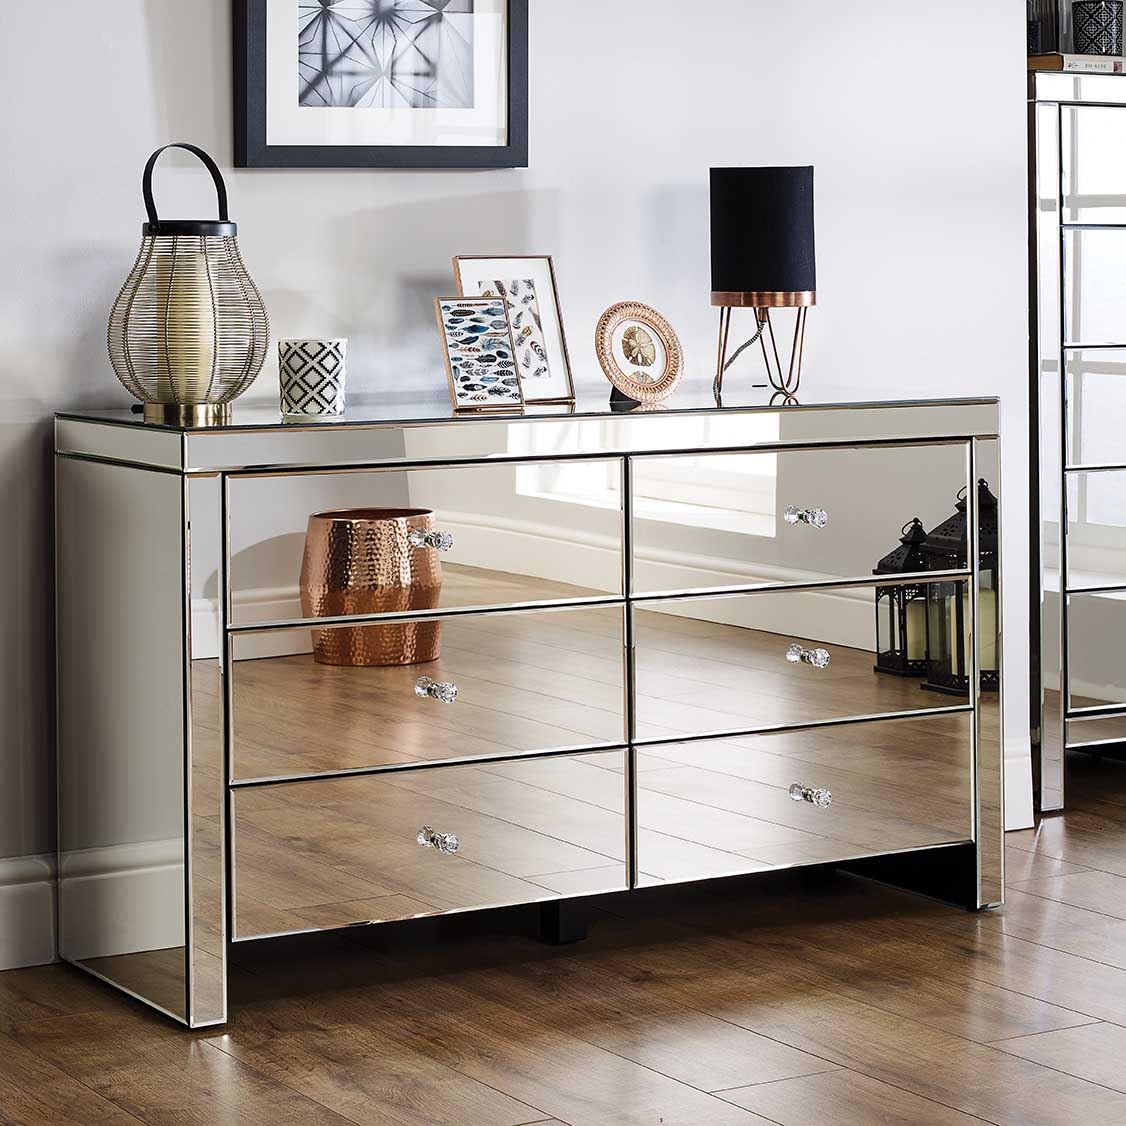 Birlea Seville Mirrored 6 Drawer Bevelled Mirror Chest Crystal Handle